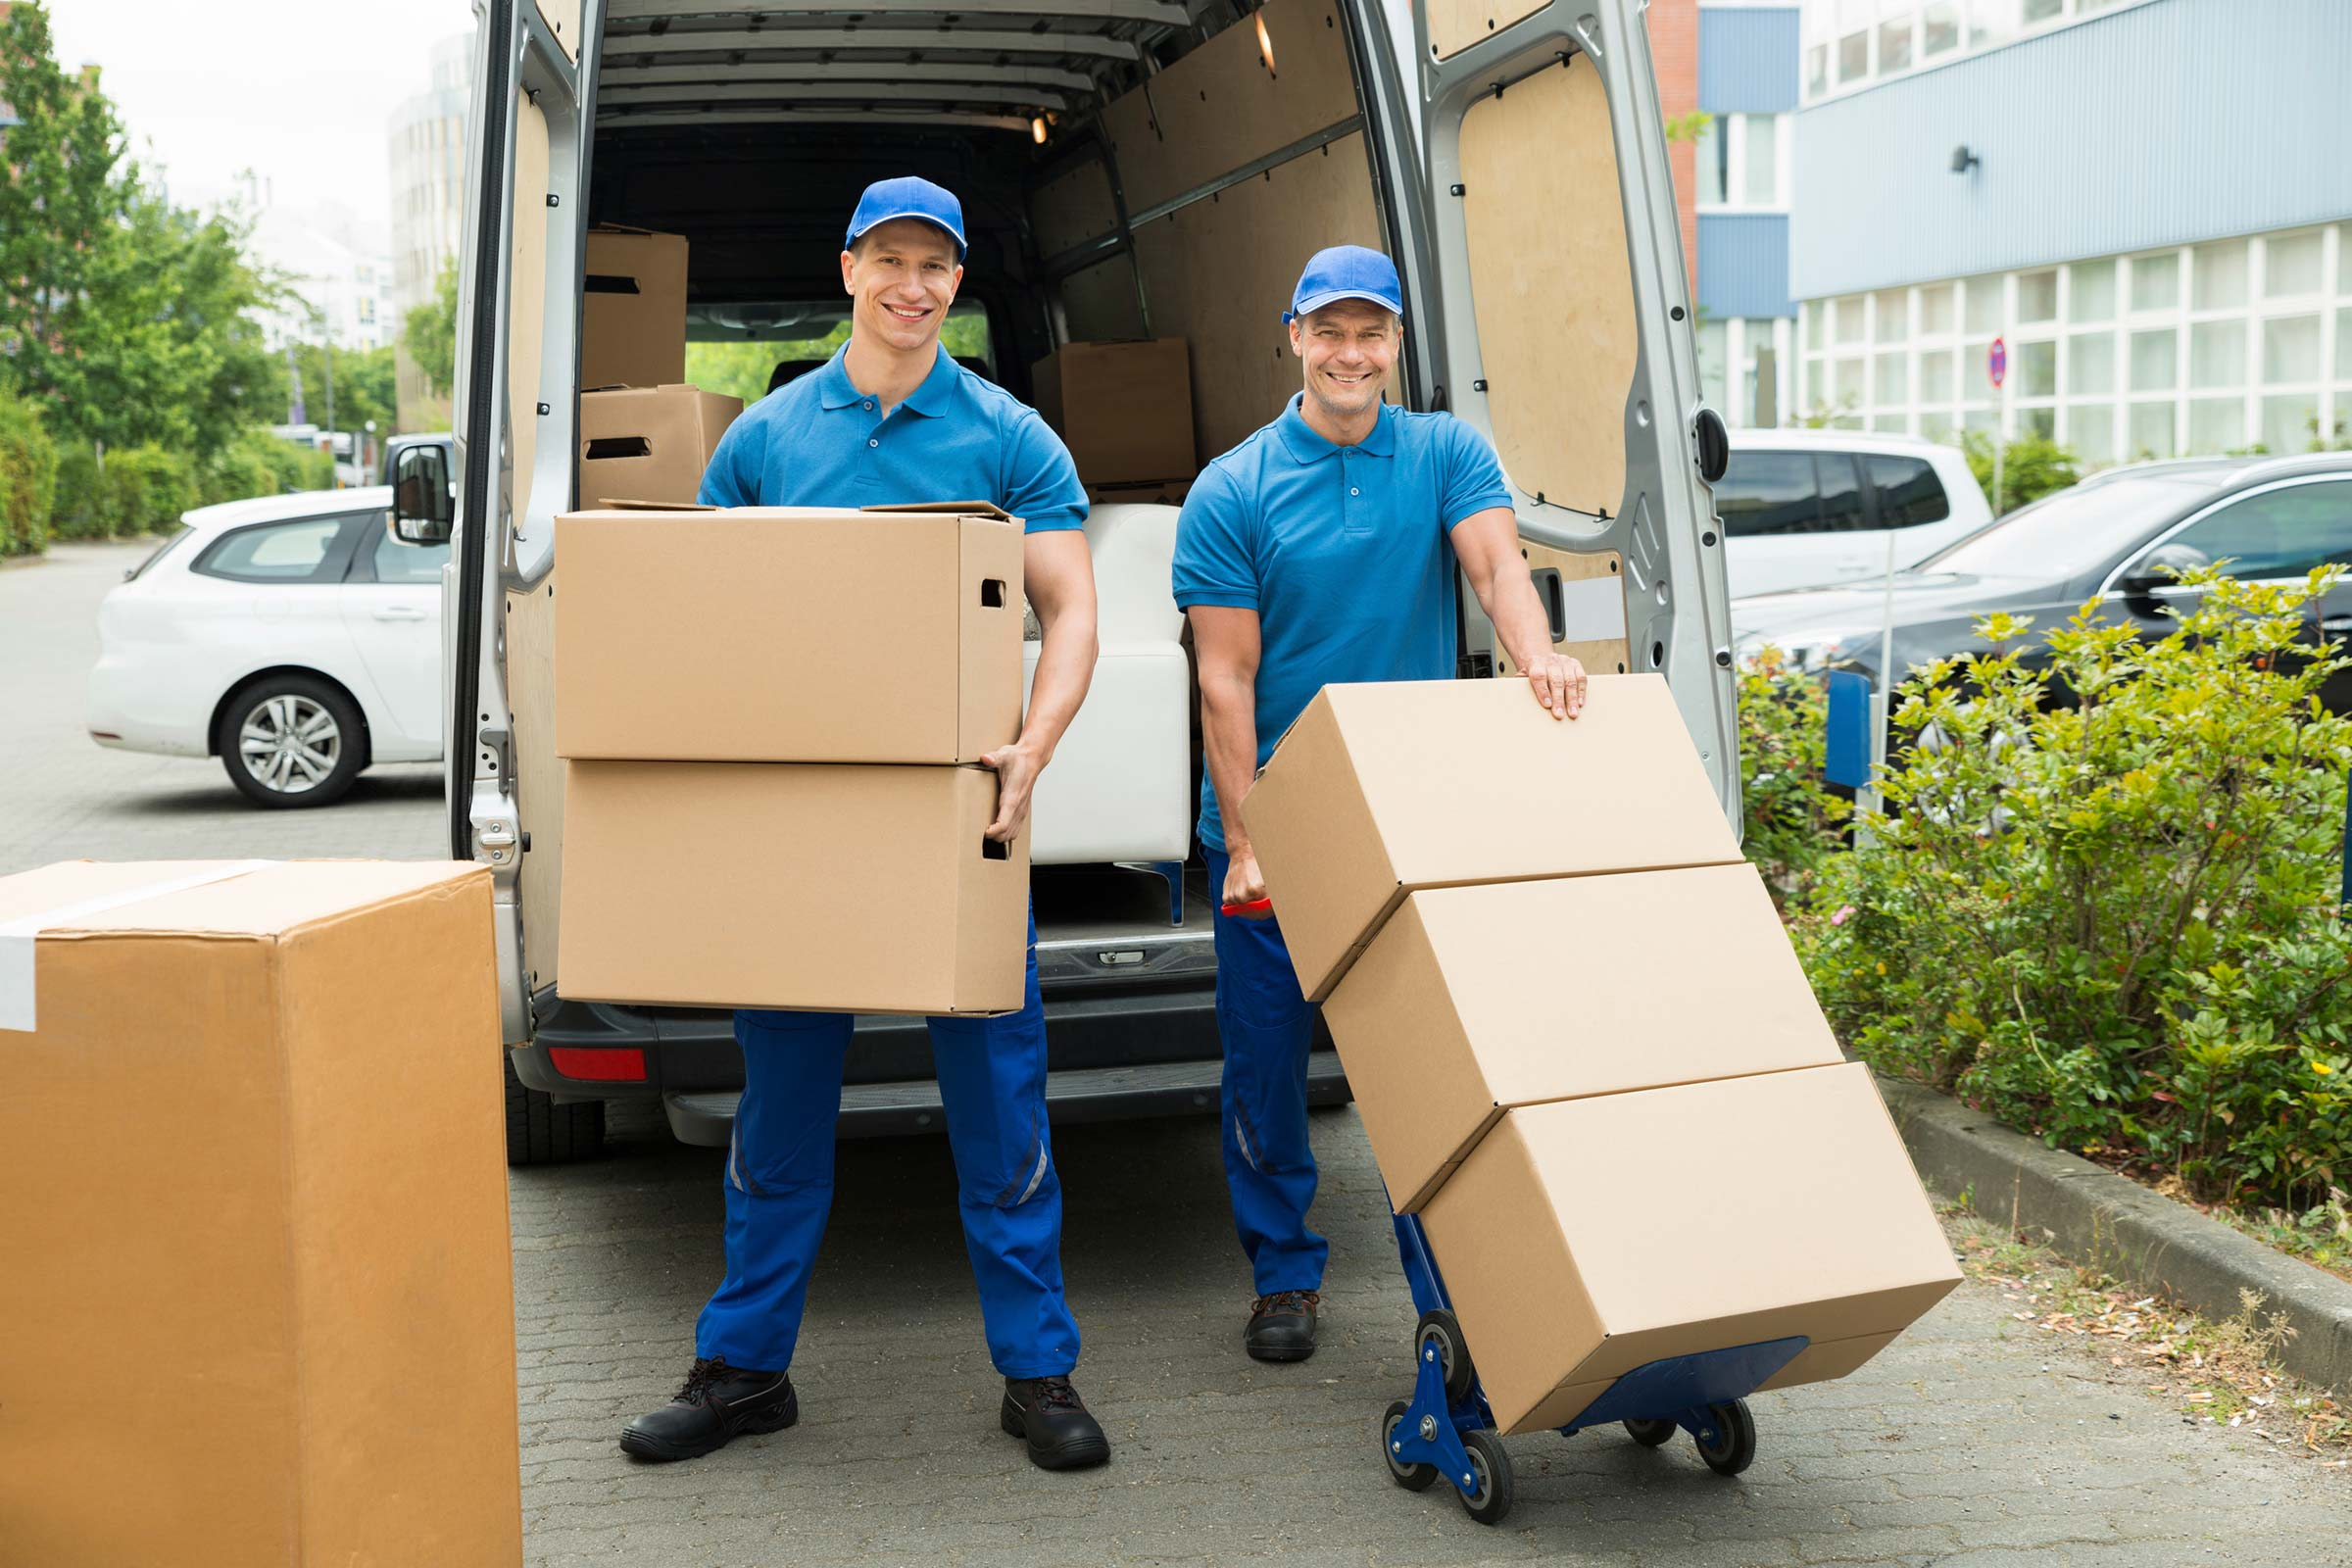 10 Tips to Find the Right Moving Company